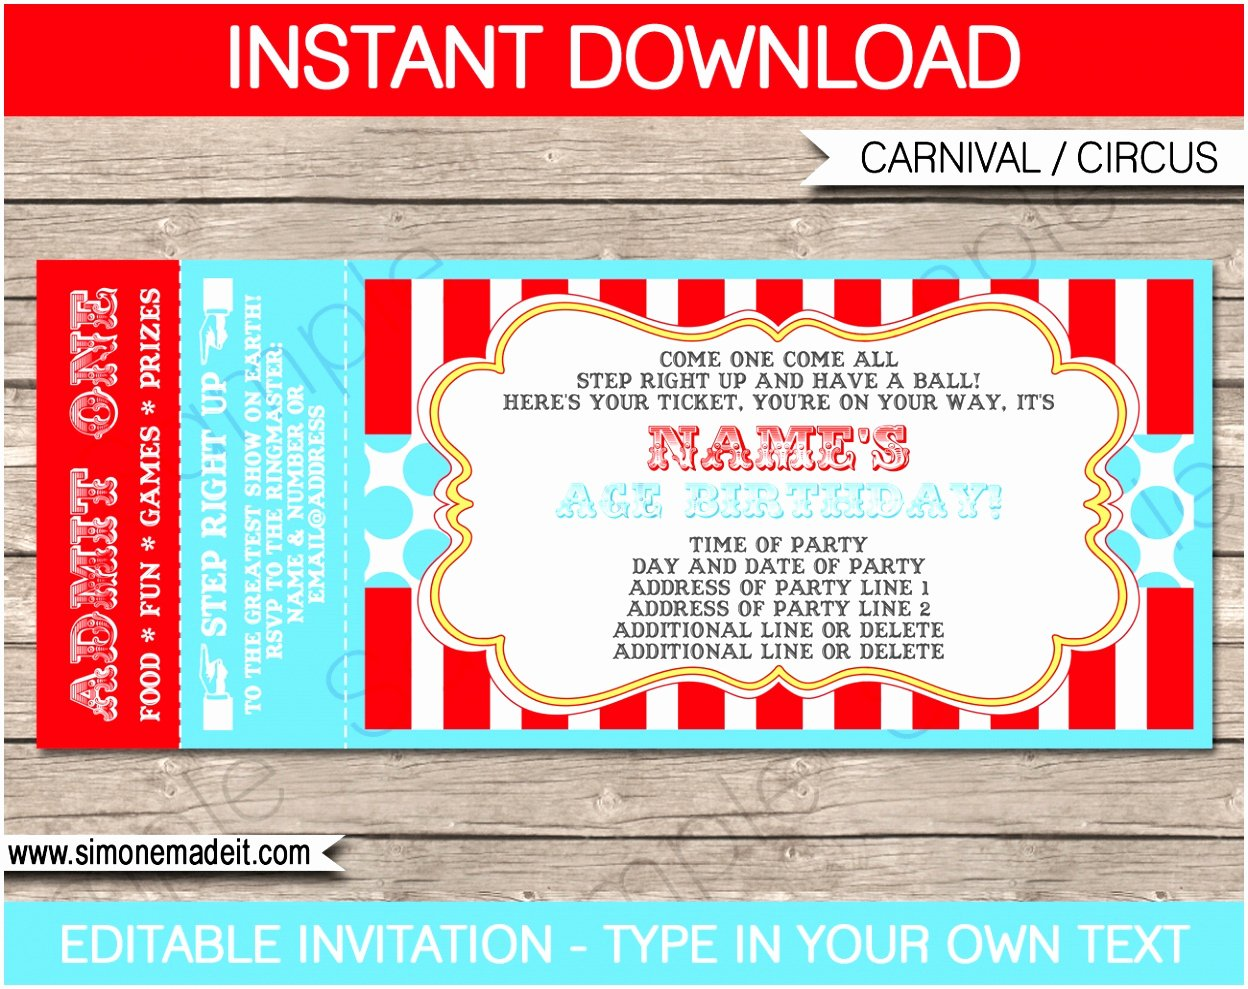 Carnival Invitation Templates Free Beautiful 12 Carnival Ticket Invitation Template Prwtv